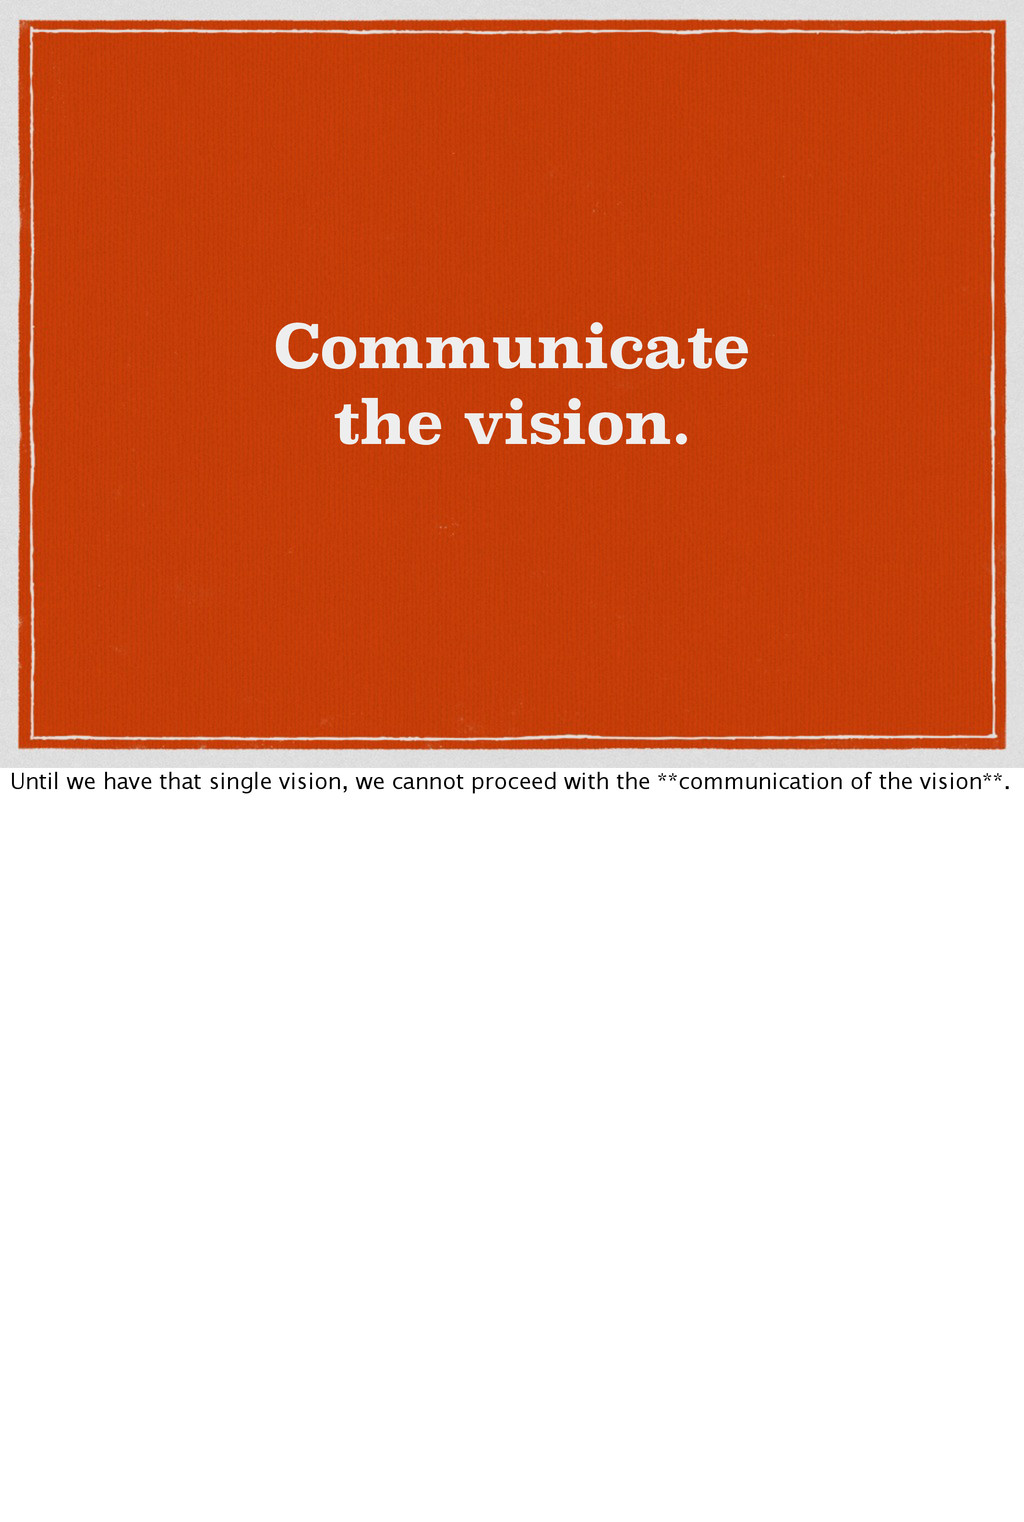 Communicate the vision. Until we have that sing...